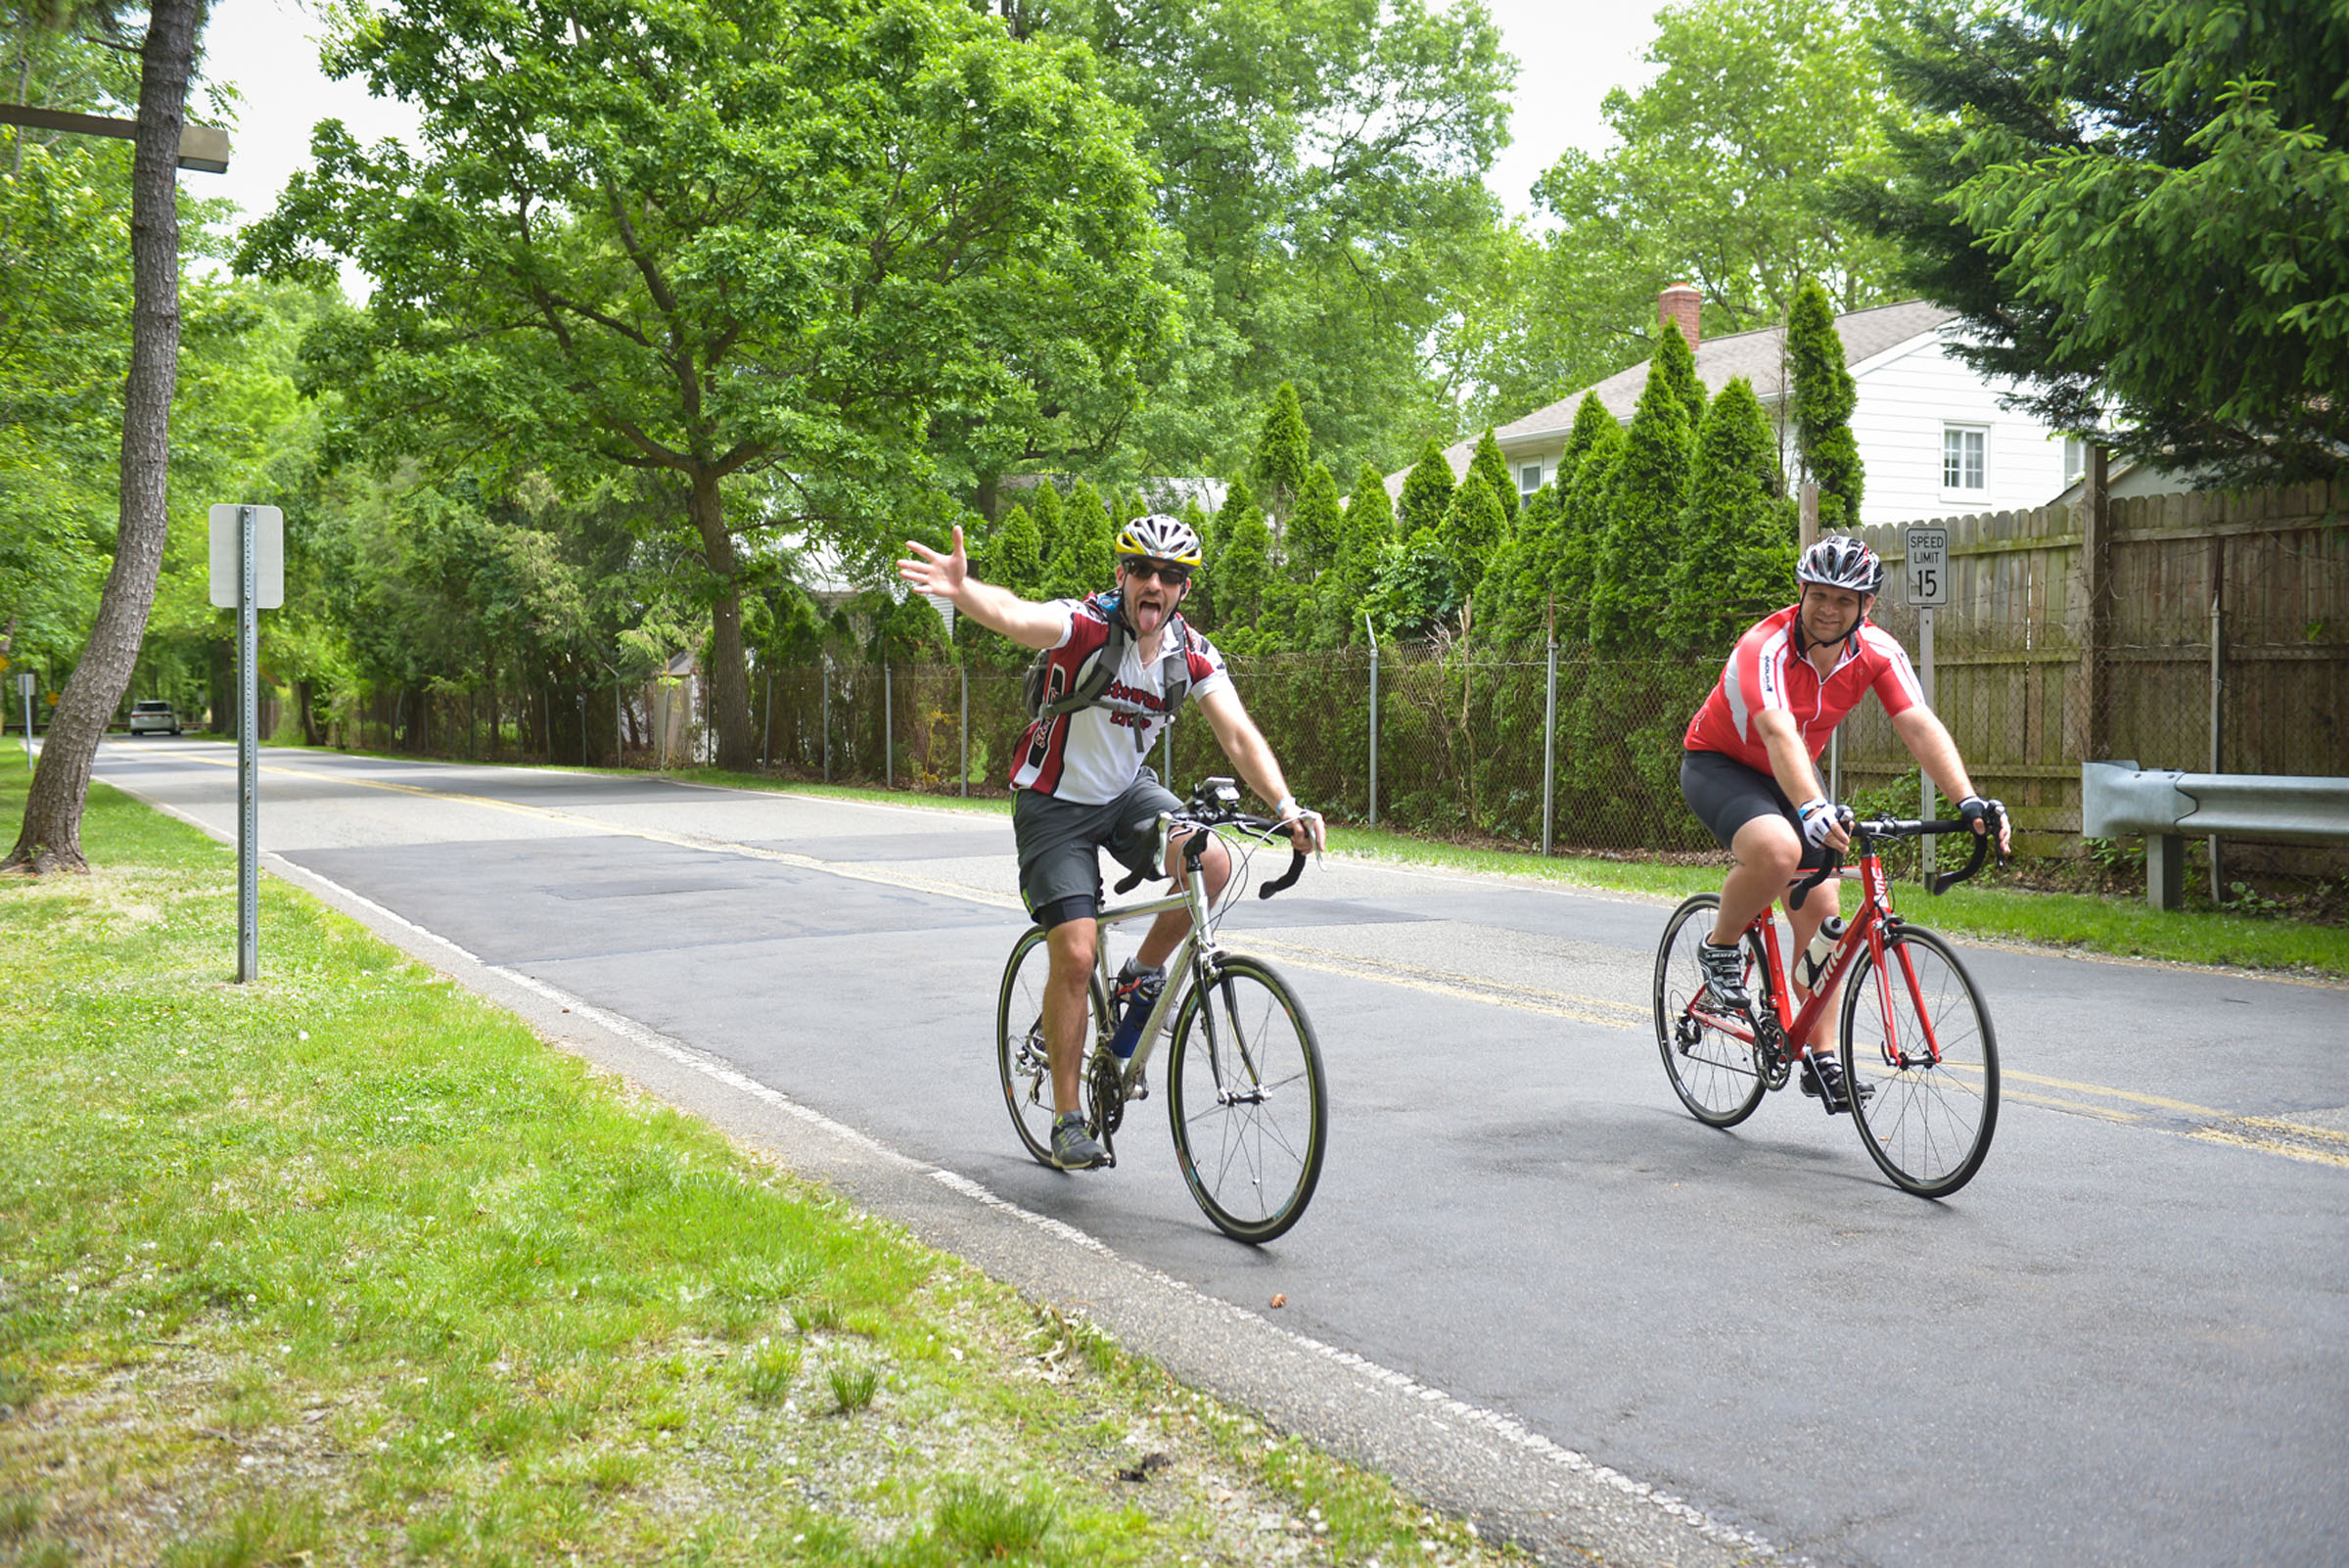 2017-06-04 GTD4A Charity Bike Ride - BCC - Paramus NJ-2365.jpg